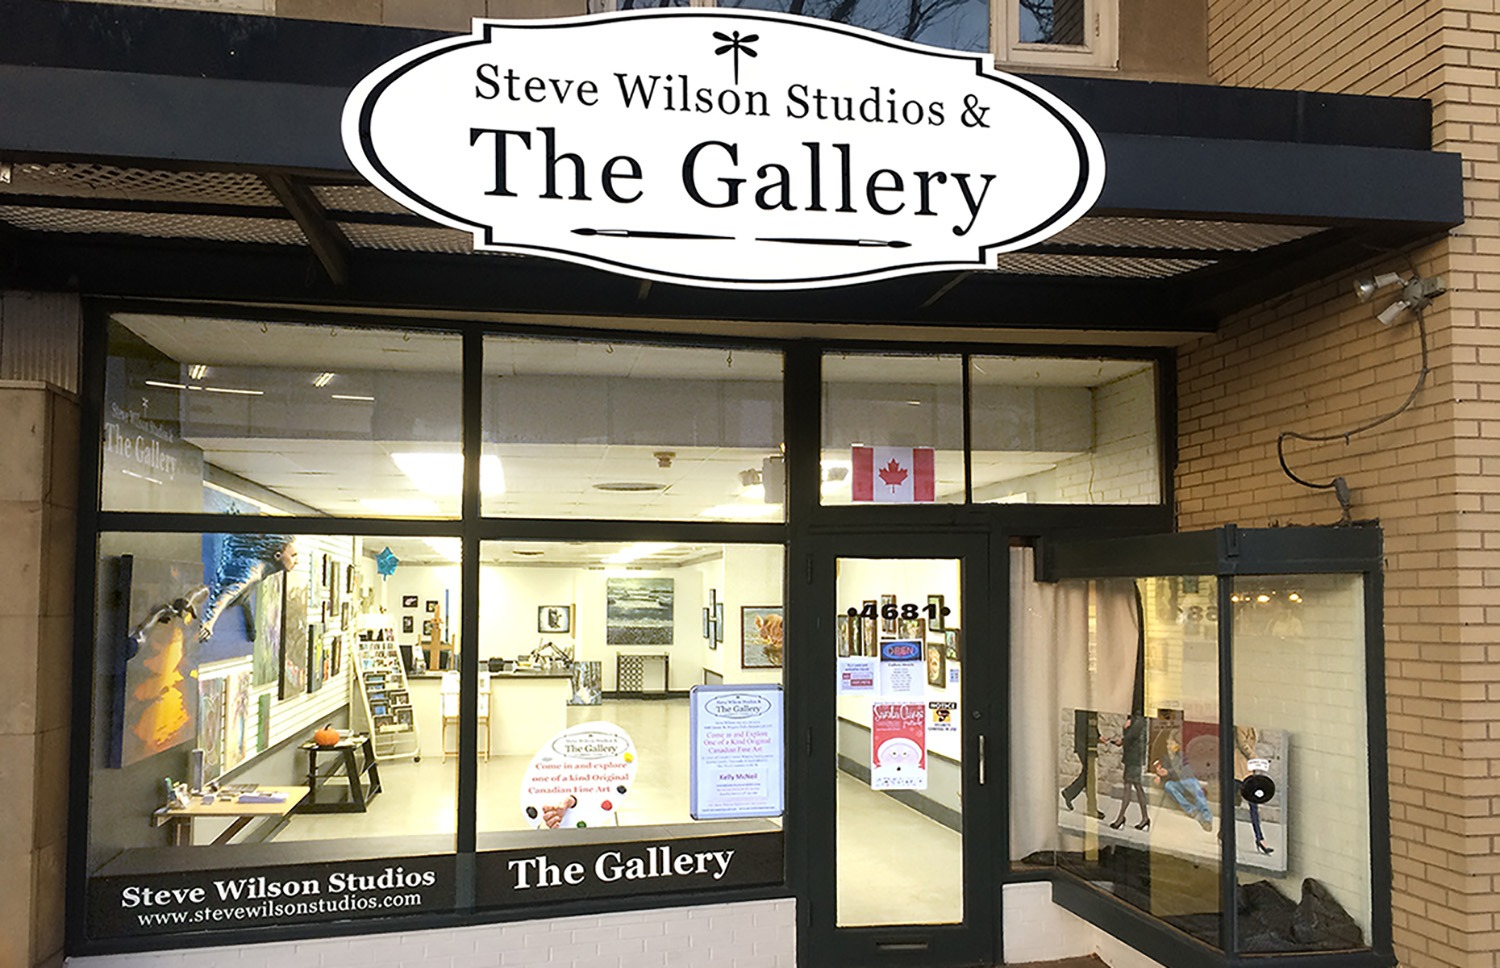 The Gallery Storefront